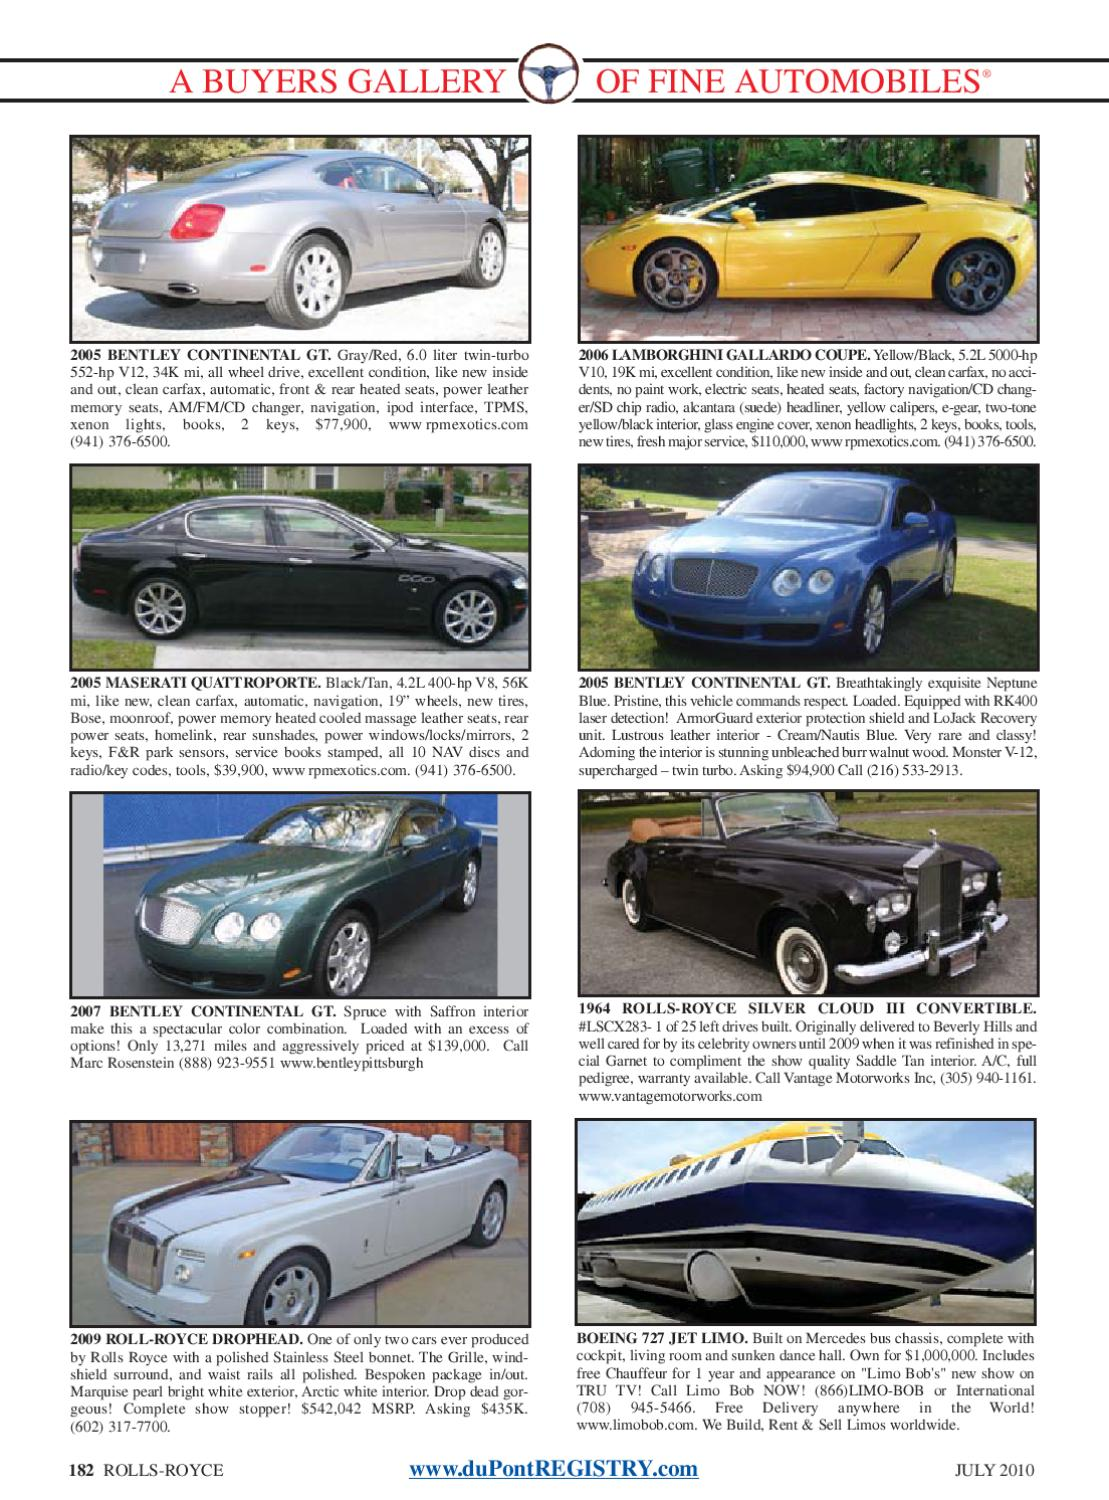 duPontREGISTRY Autos July 2010 by duPont REGISTRY - issuu